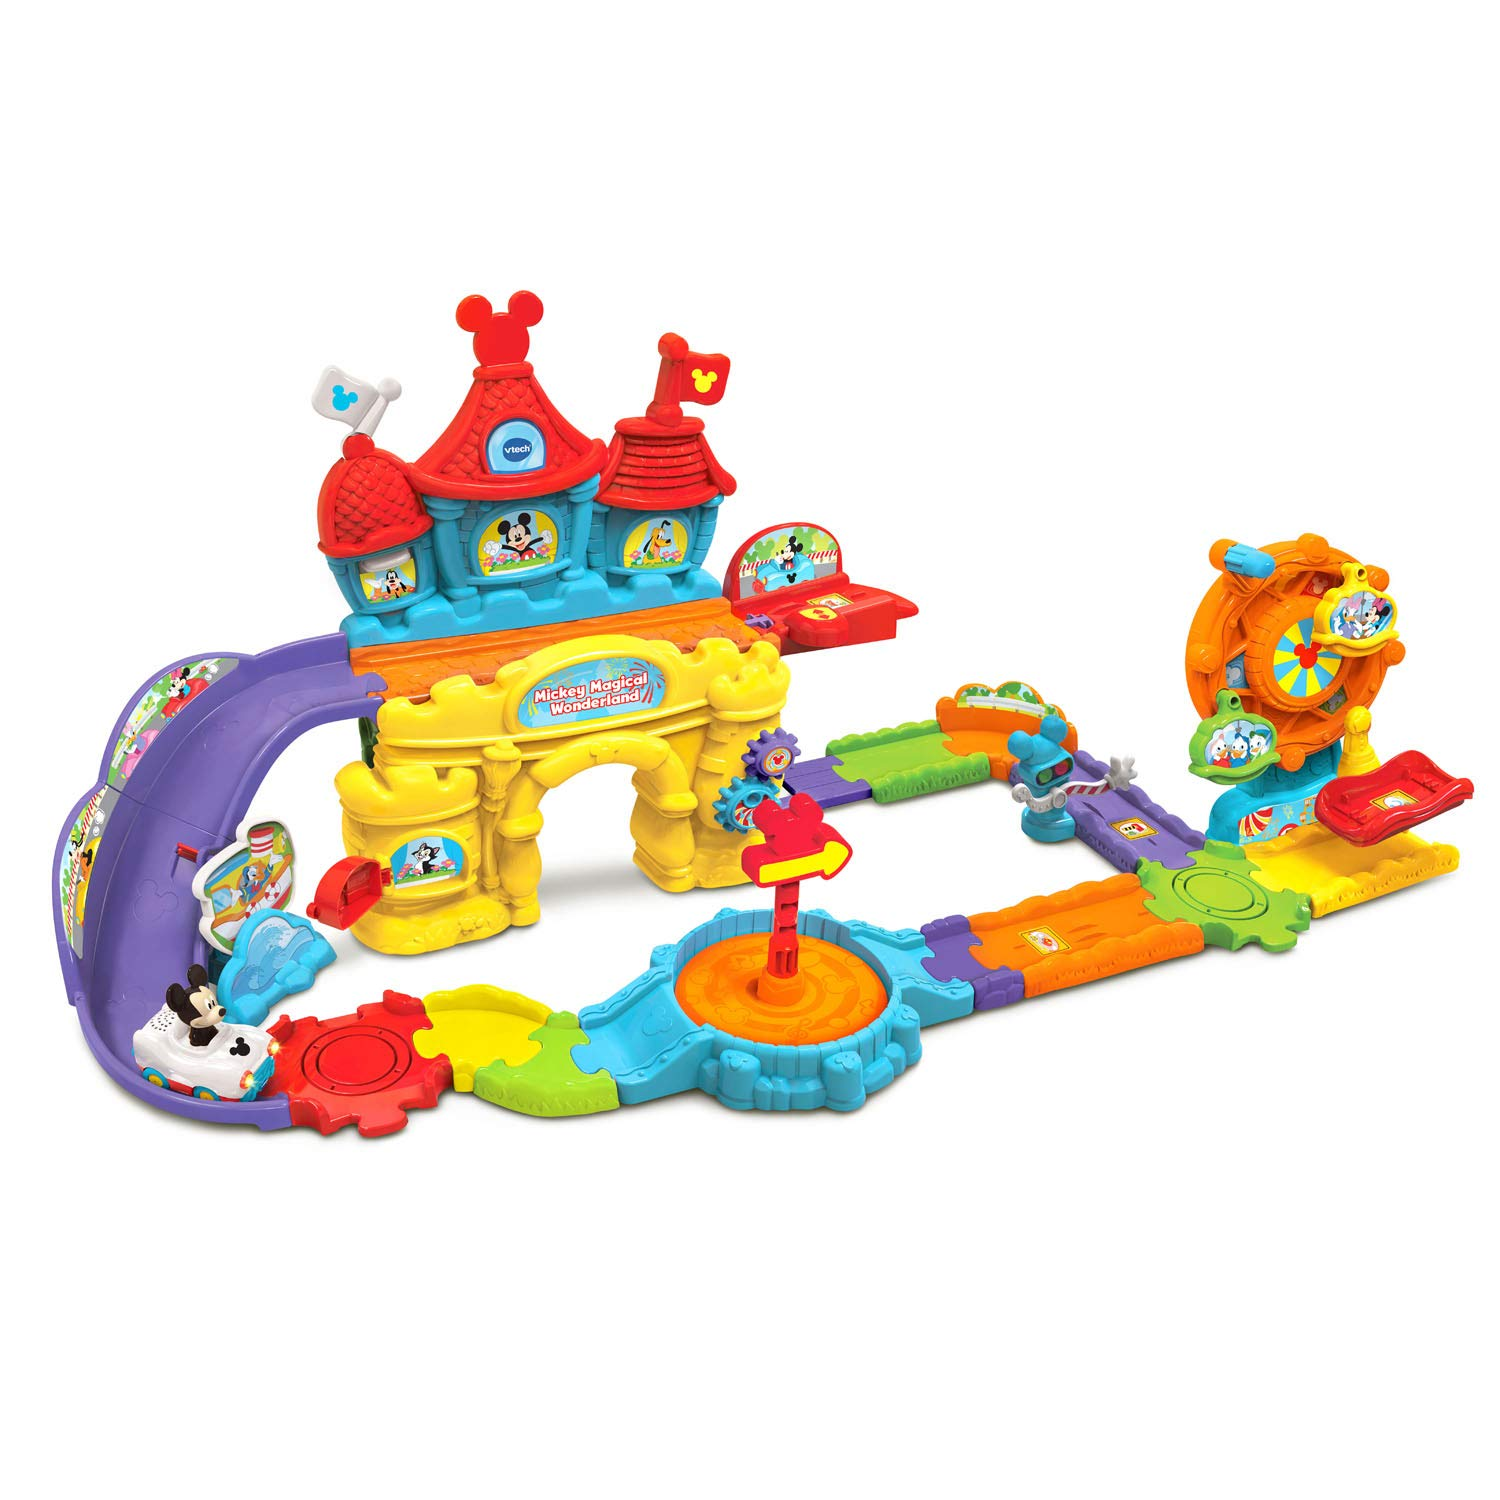 VTech Go! Go! Smart Wheels Mickey Mouse Magical Wonderland, Multicolor by VTech (Image #2)